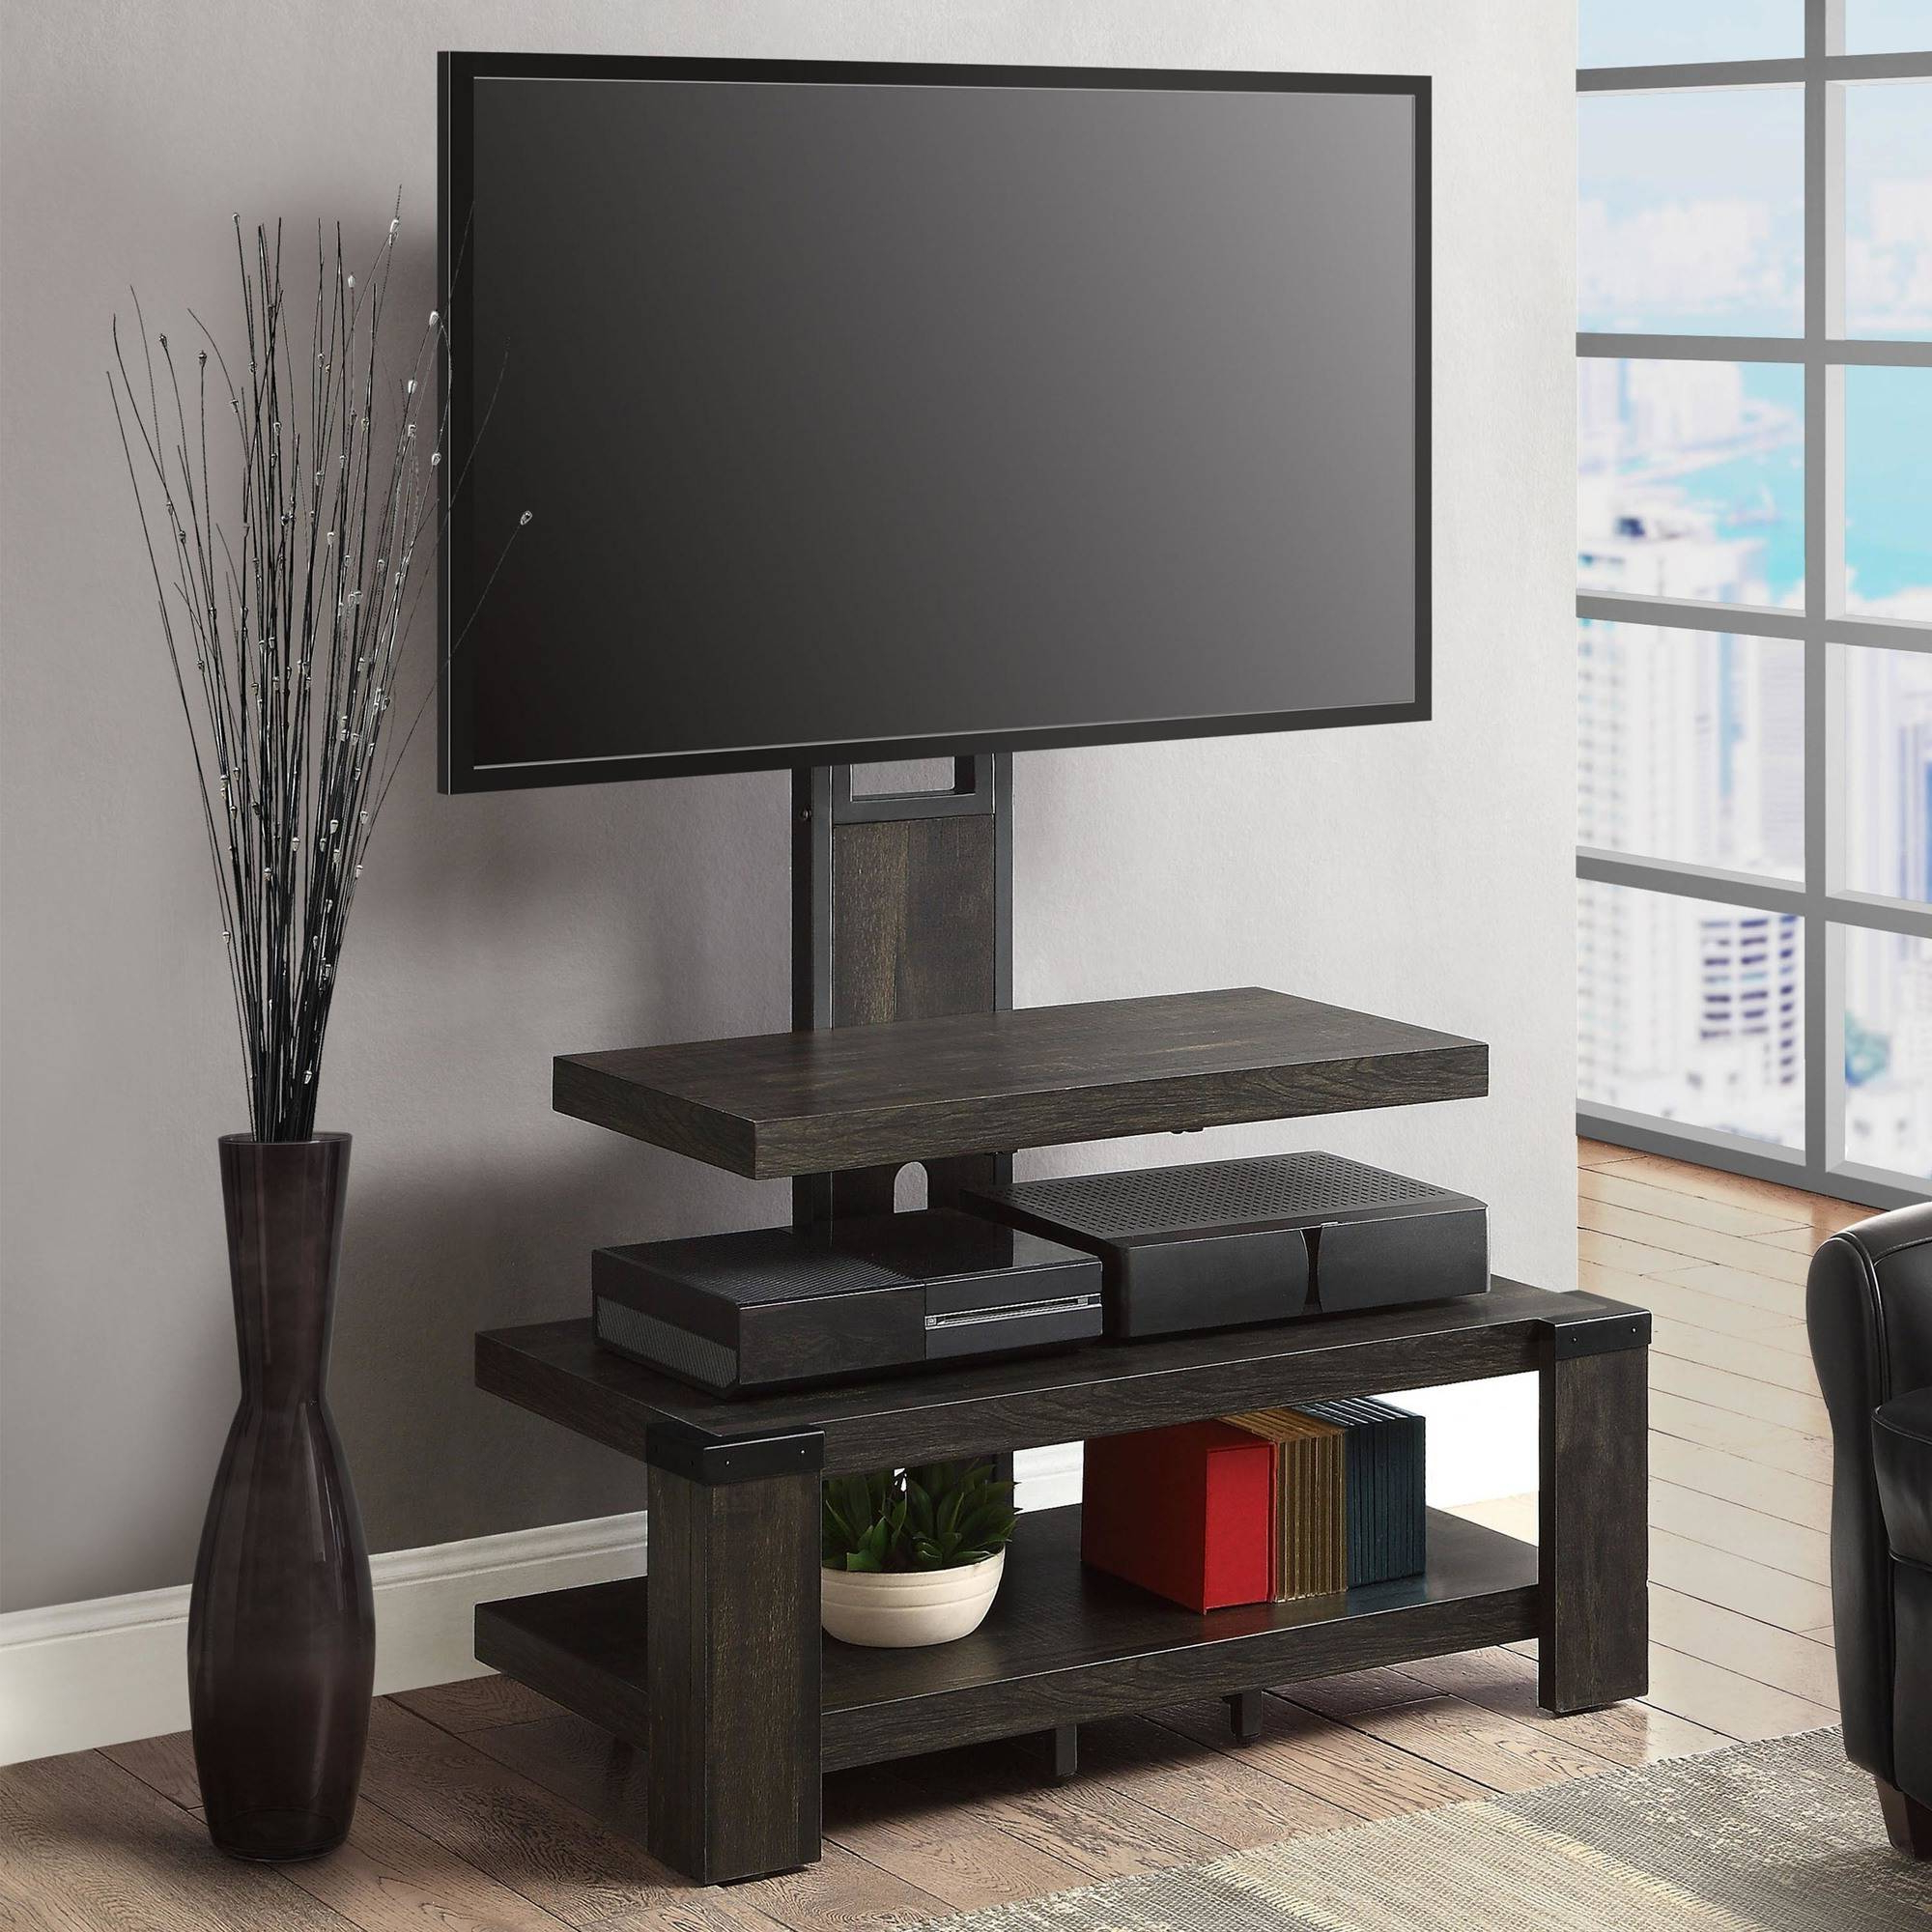 Whalen 3 Shelf Television Stand With Floater Mount For Tvs Up To 55 Throughout Most Recently Released 65 Inch Tv Stands With Integrated Mount (View 12 of 20)